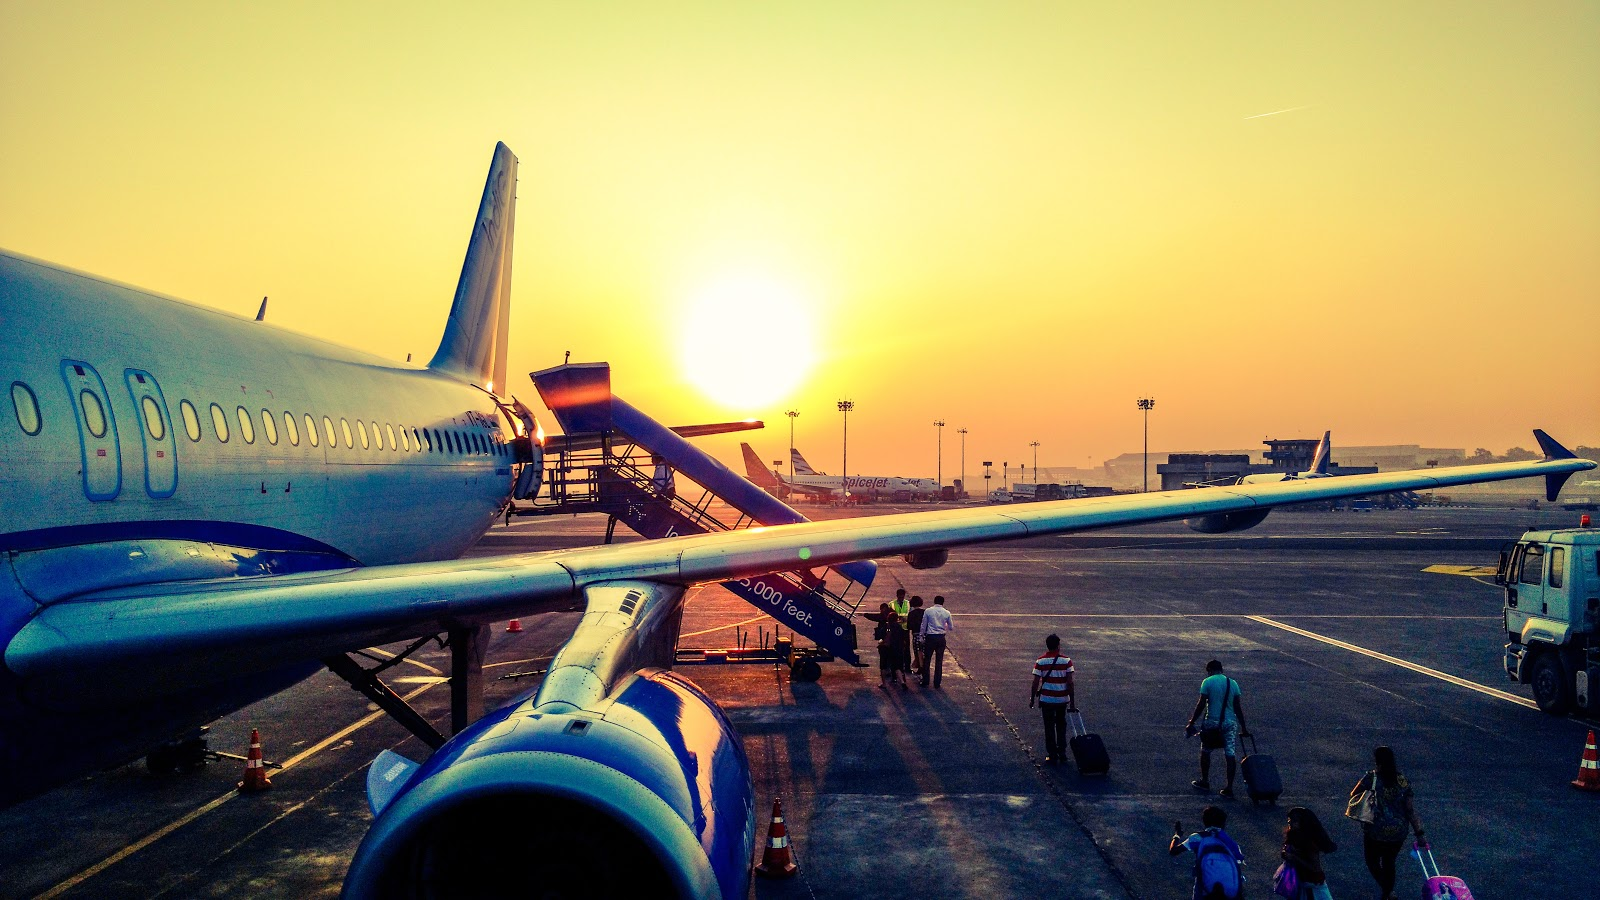 Boarding a Plane at Sunset - Cheap Airport Parking